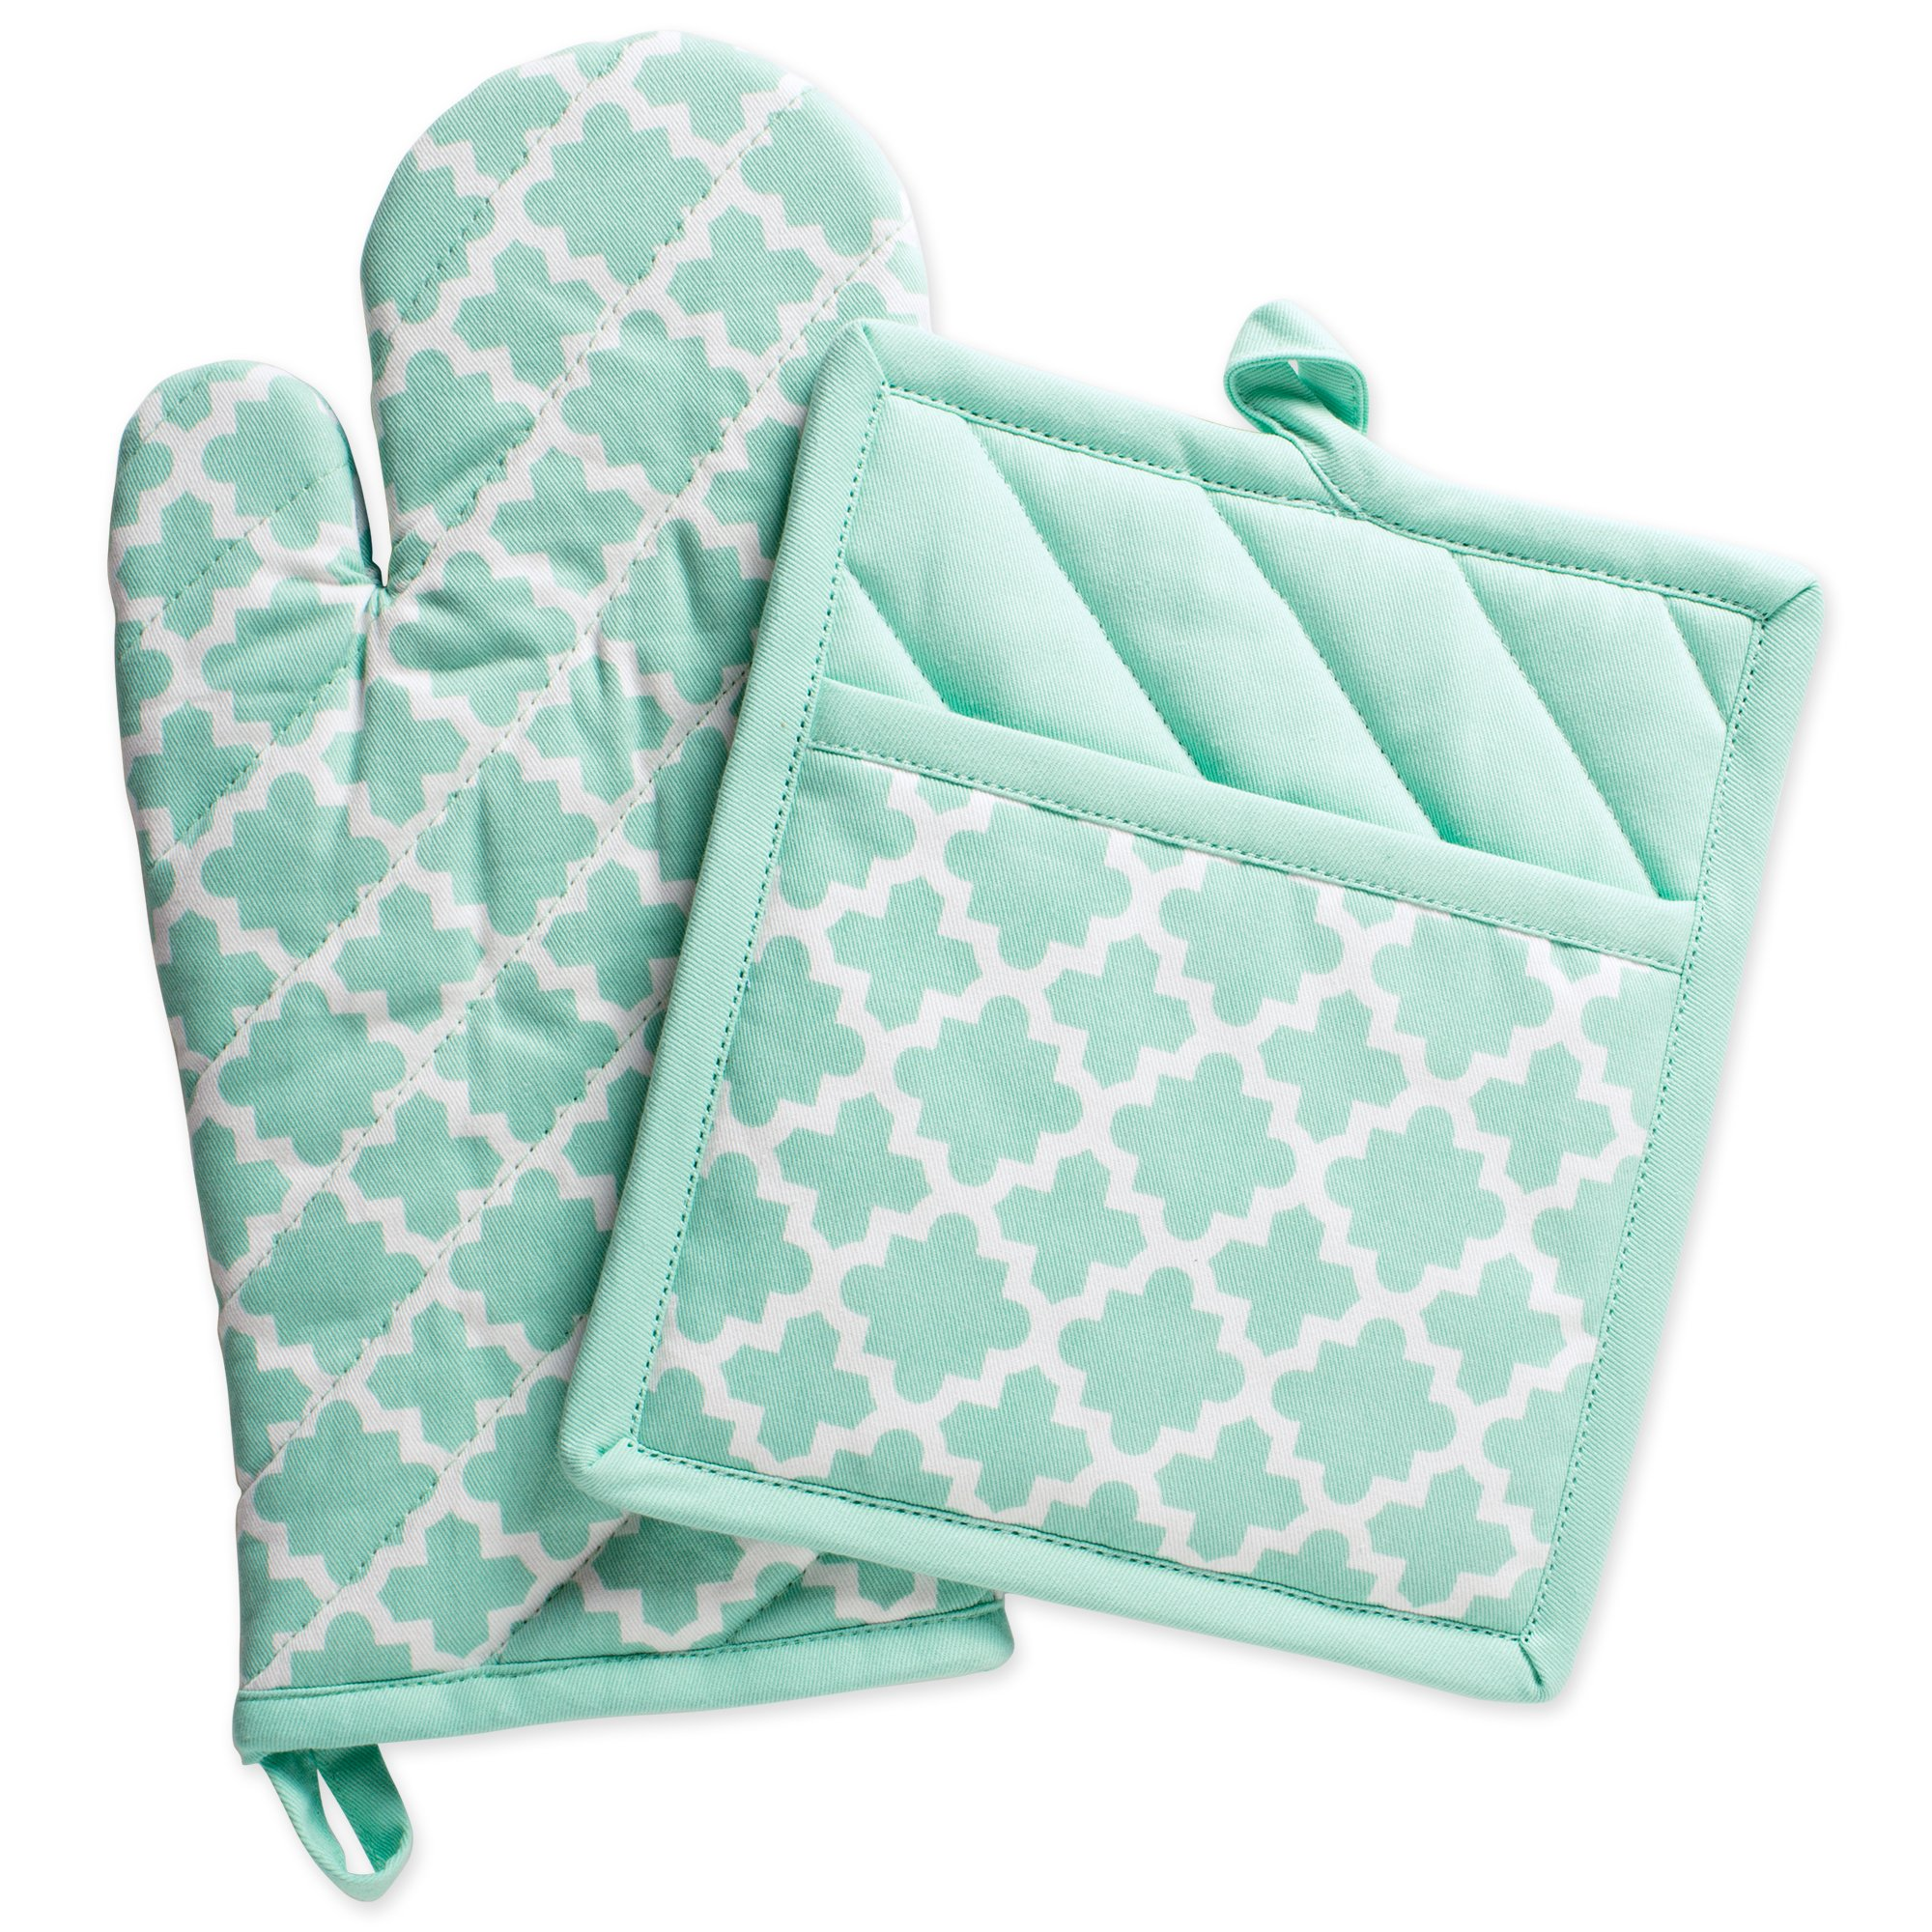 "DII Cotton Lattice Oven Mitt 13 x 7"" and  Pot Holder 9 x 8"" Kitchen Gift Set, Machine Washable and Heat Resistant for Cooking & Baking-Aqua"